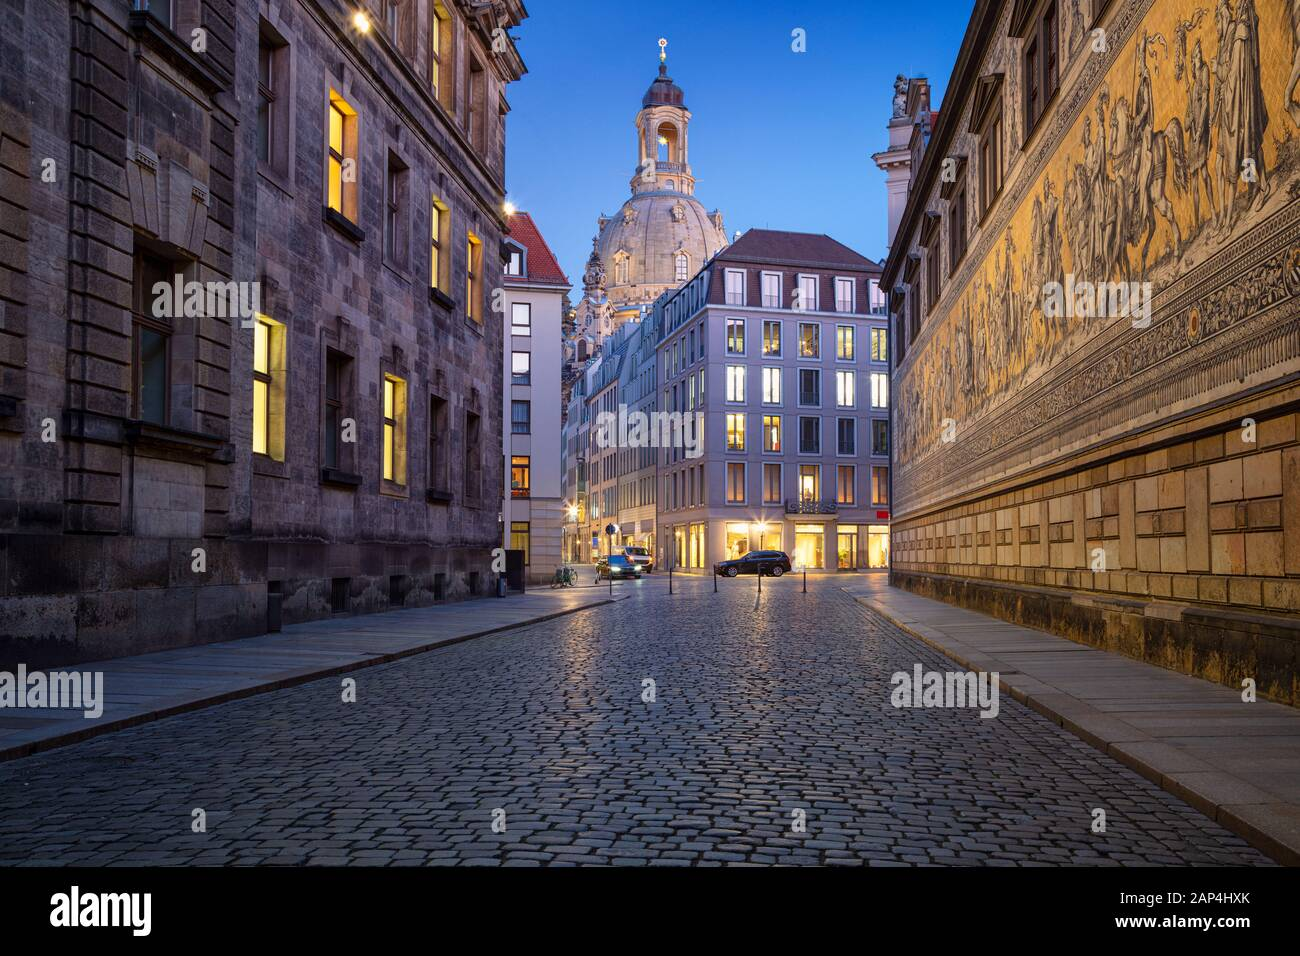 Dresden, Germany. Image of Dresden, Germany with the Dresden Frauenkirche during twilight blue hour. Stock Photo